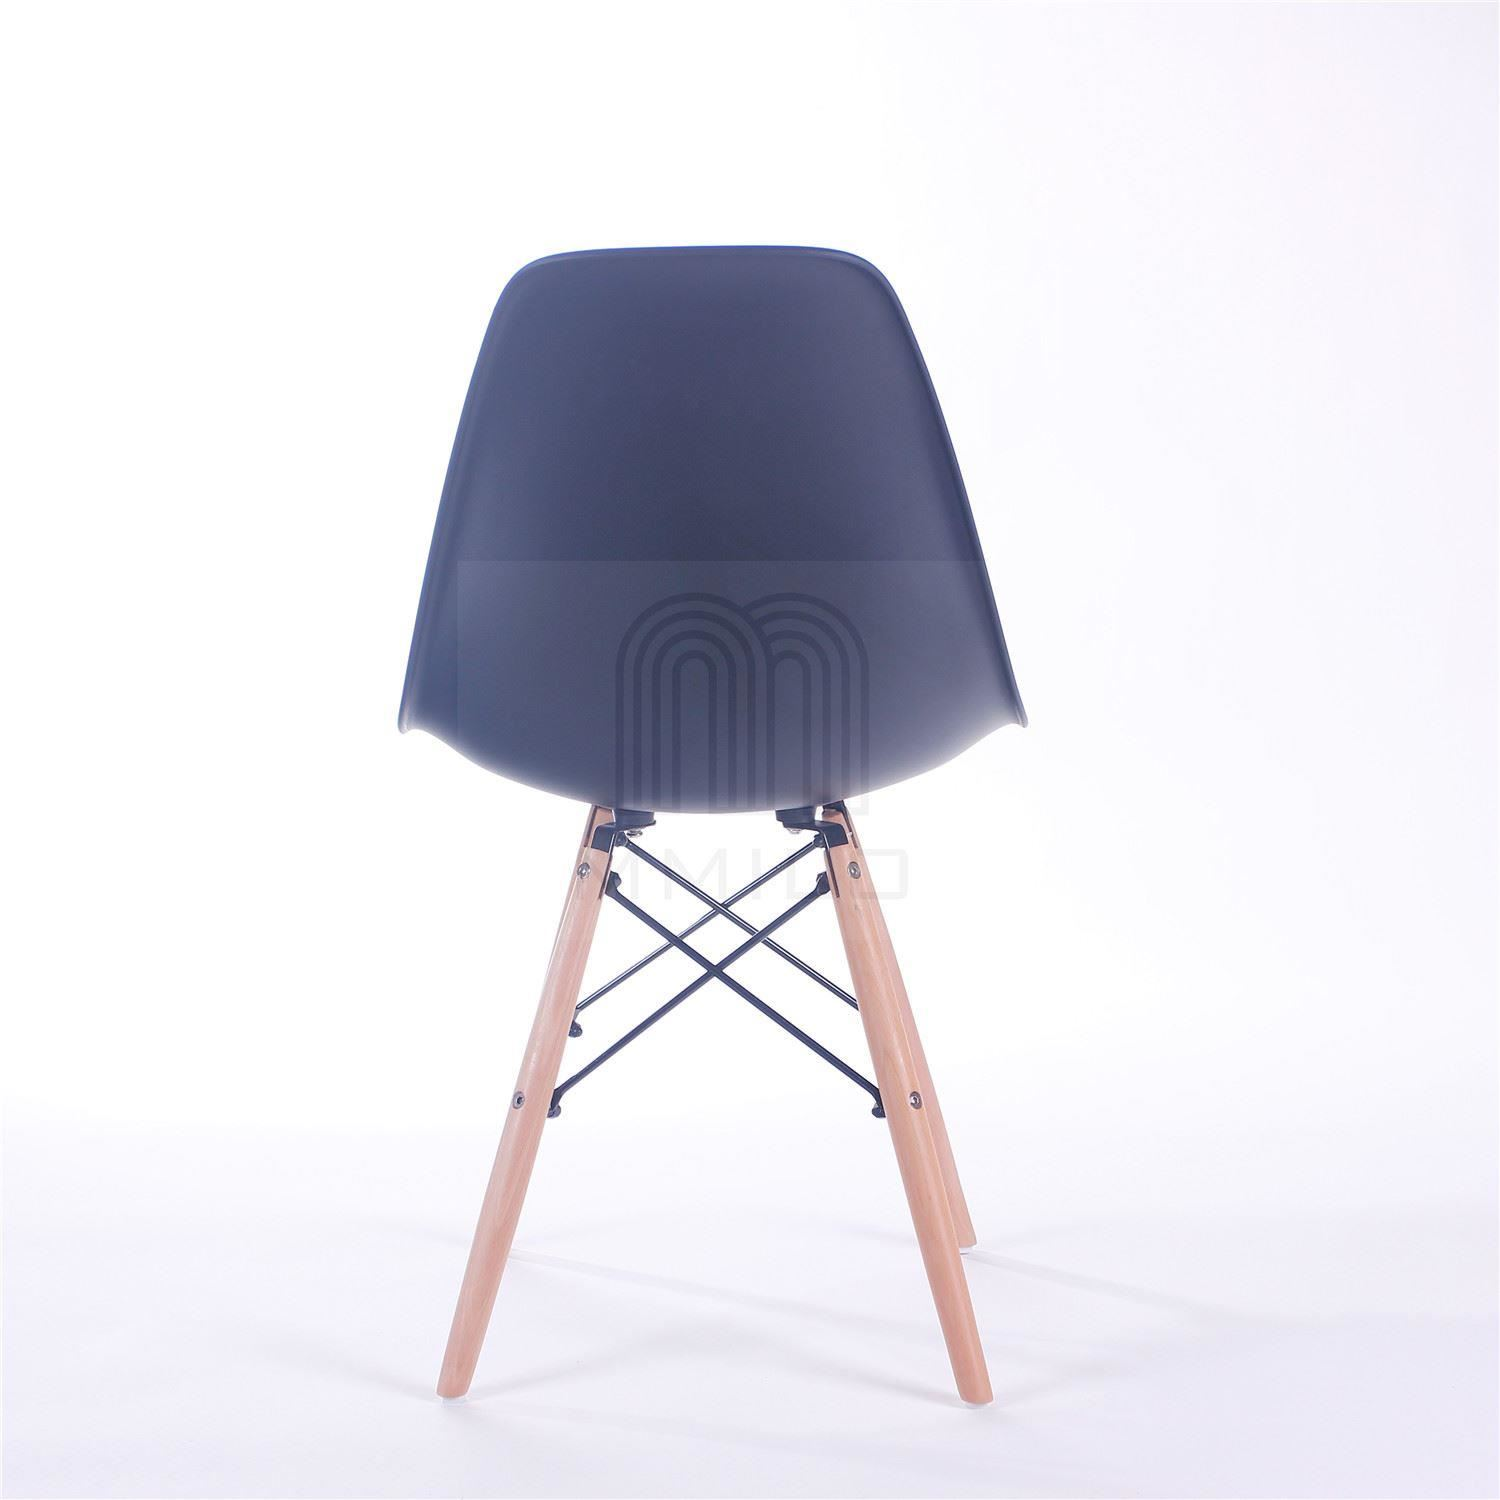 Crazygadget Charles Ray Eames Inspired Eiffel Dsw Retro: Charles Ray Eames Eiffel Inspired DSW Side Dining Chair